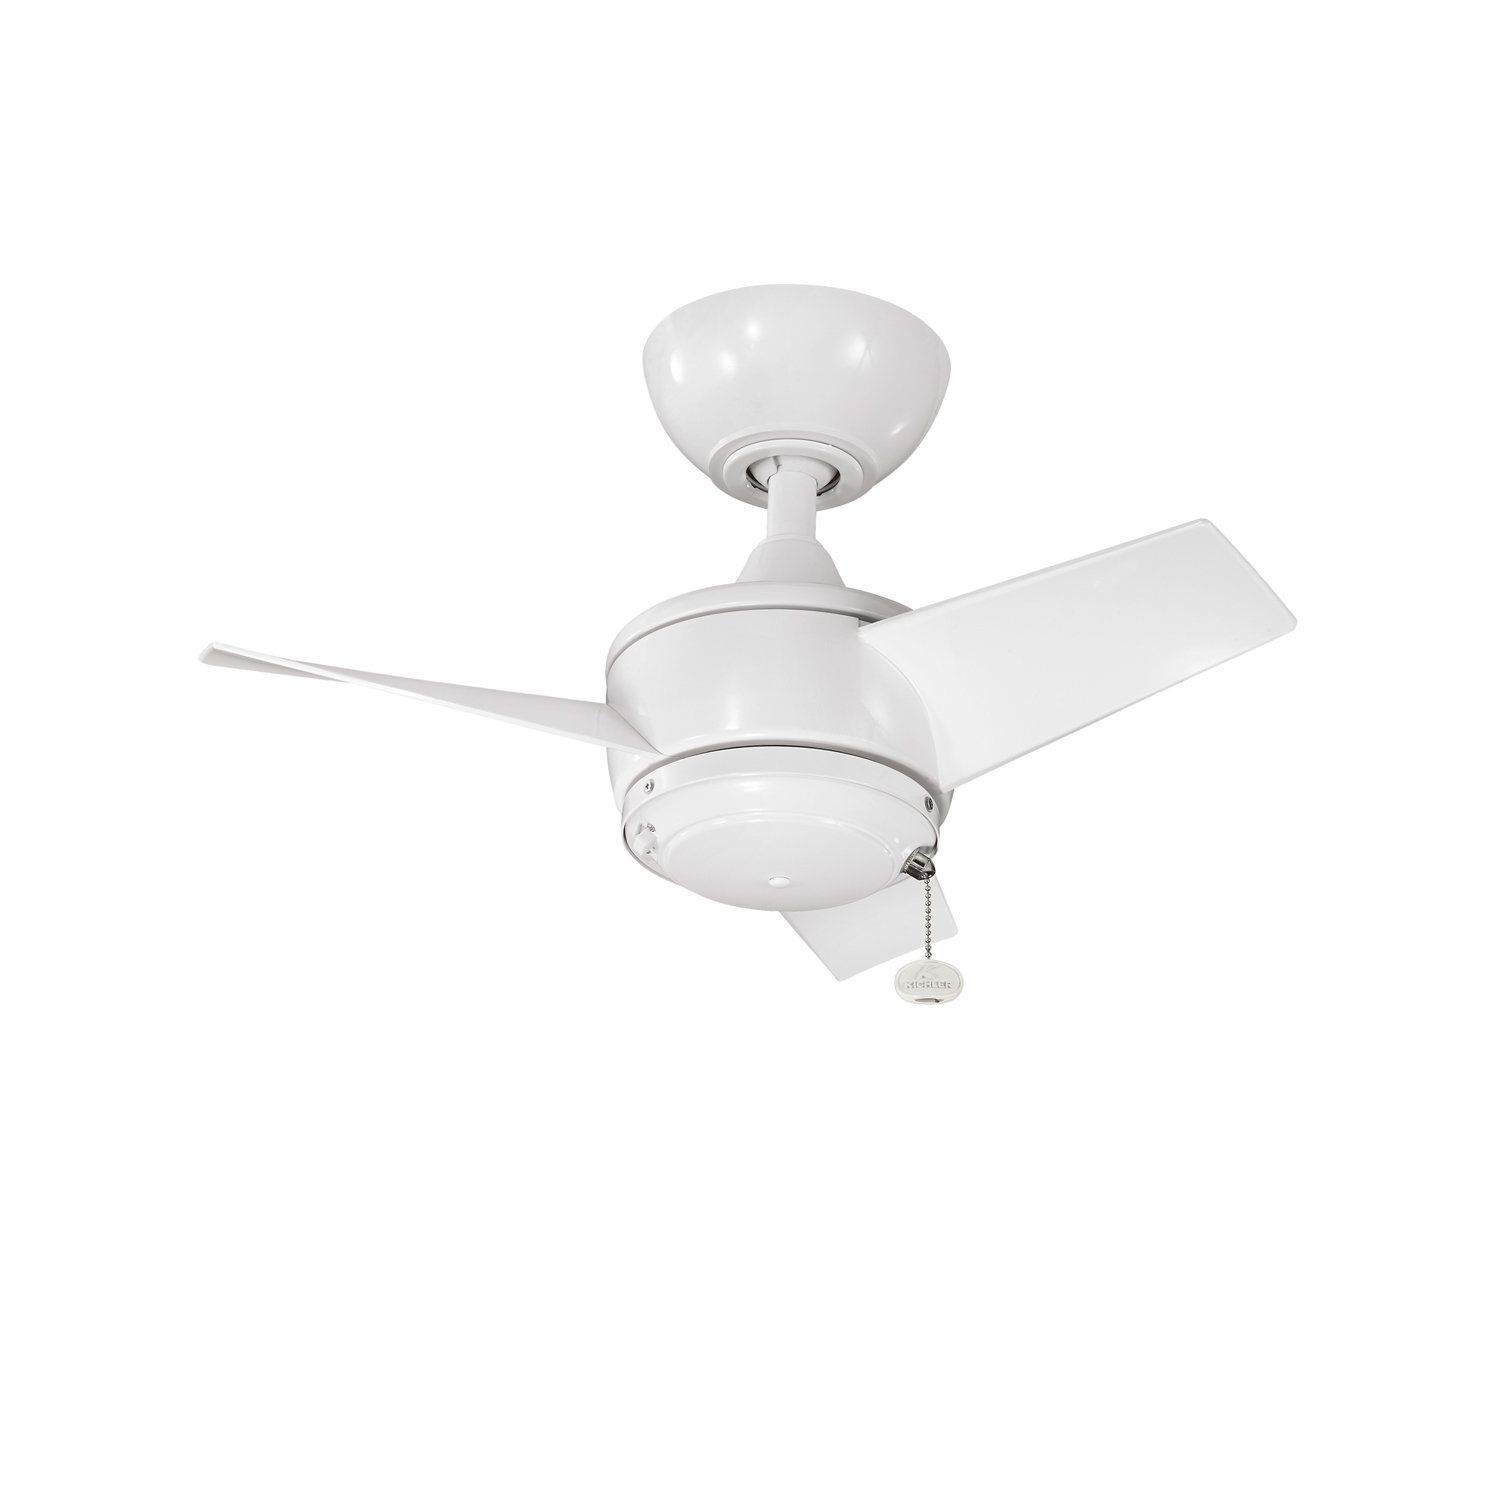 Robot Check Ceiling Fan White Ceiling Fan Outdoor Ceiling Fans